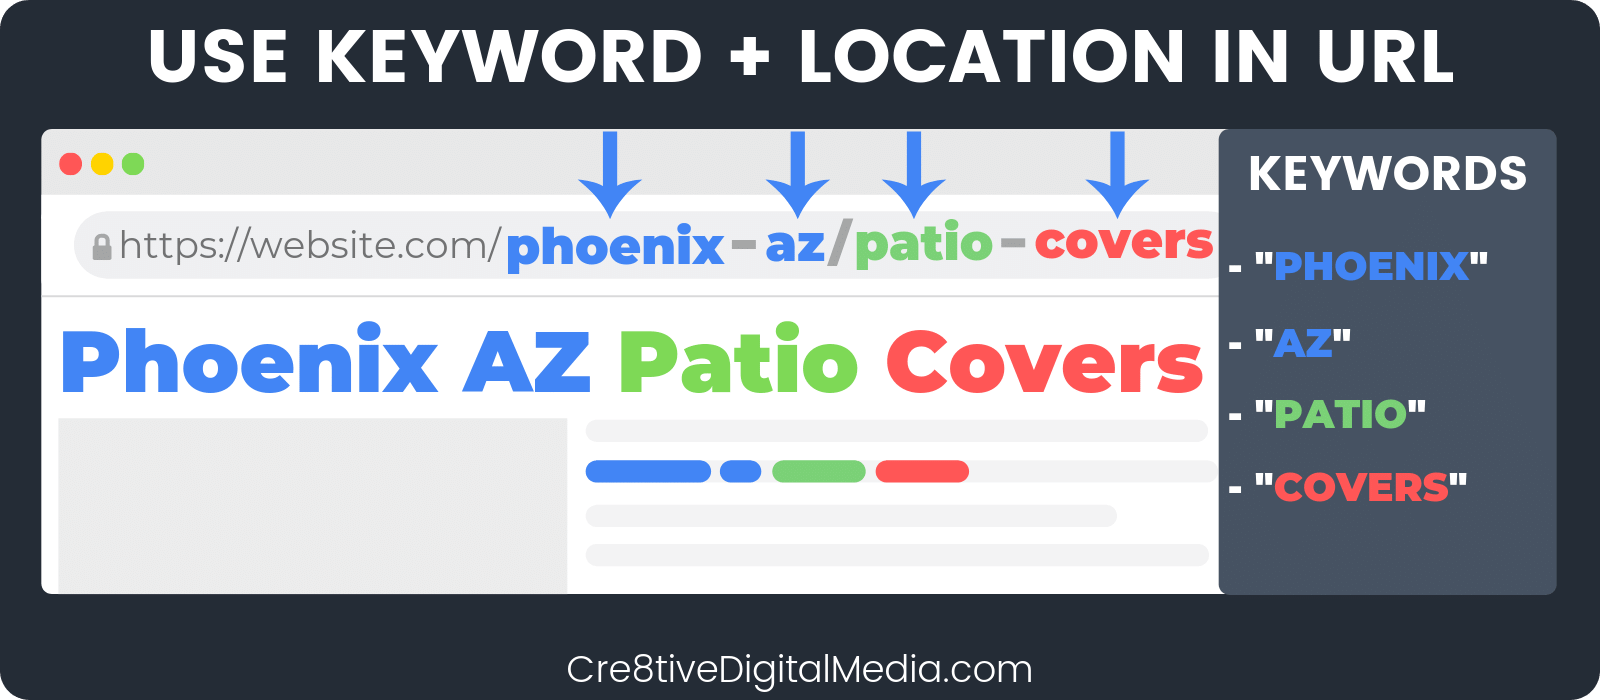 Use Keyword+Location in URL